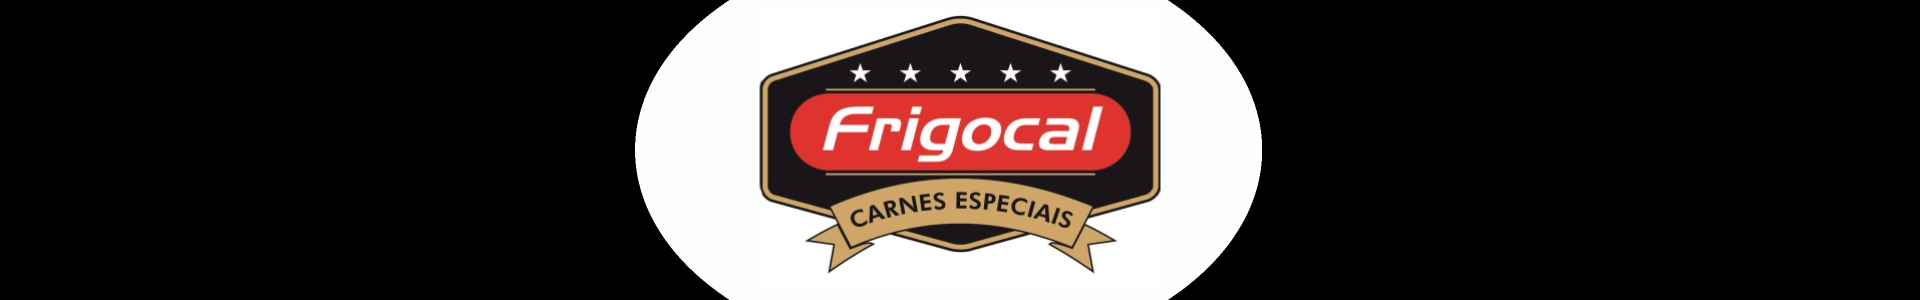 FRIGOCAL